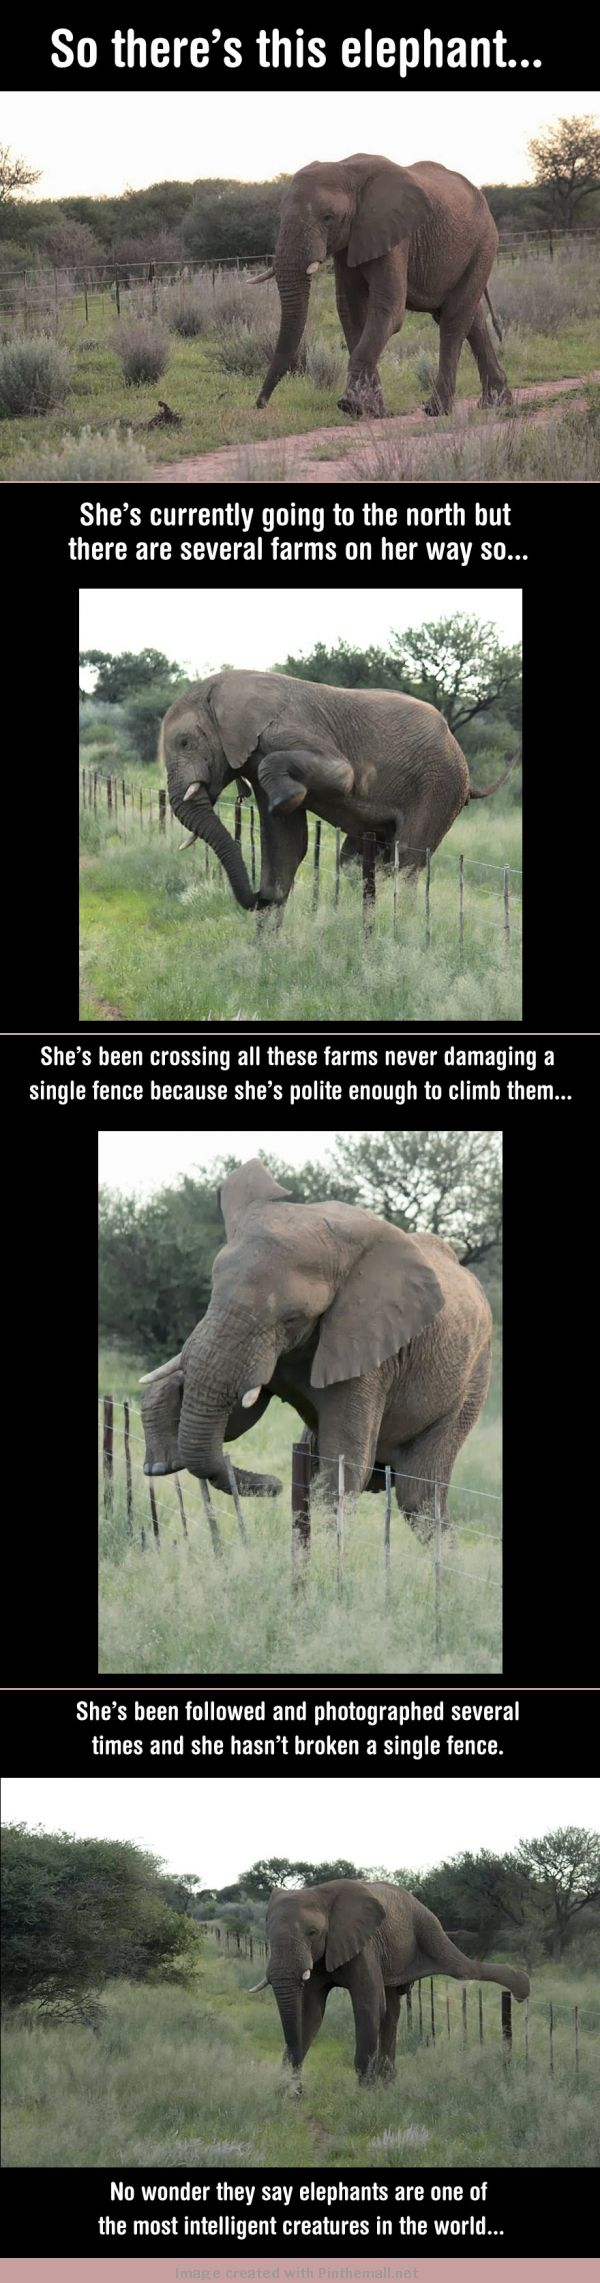 So there's this elephant.